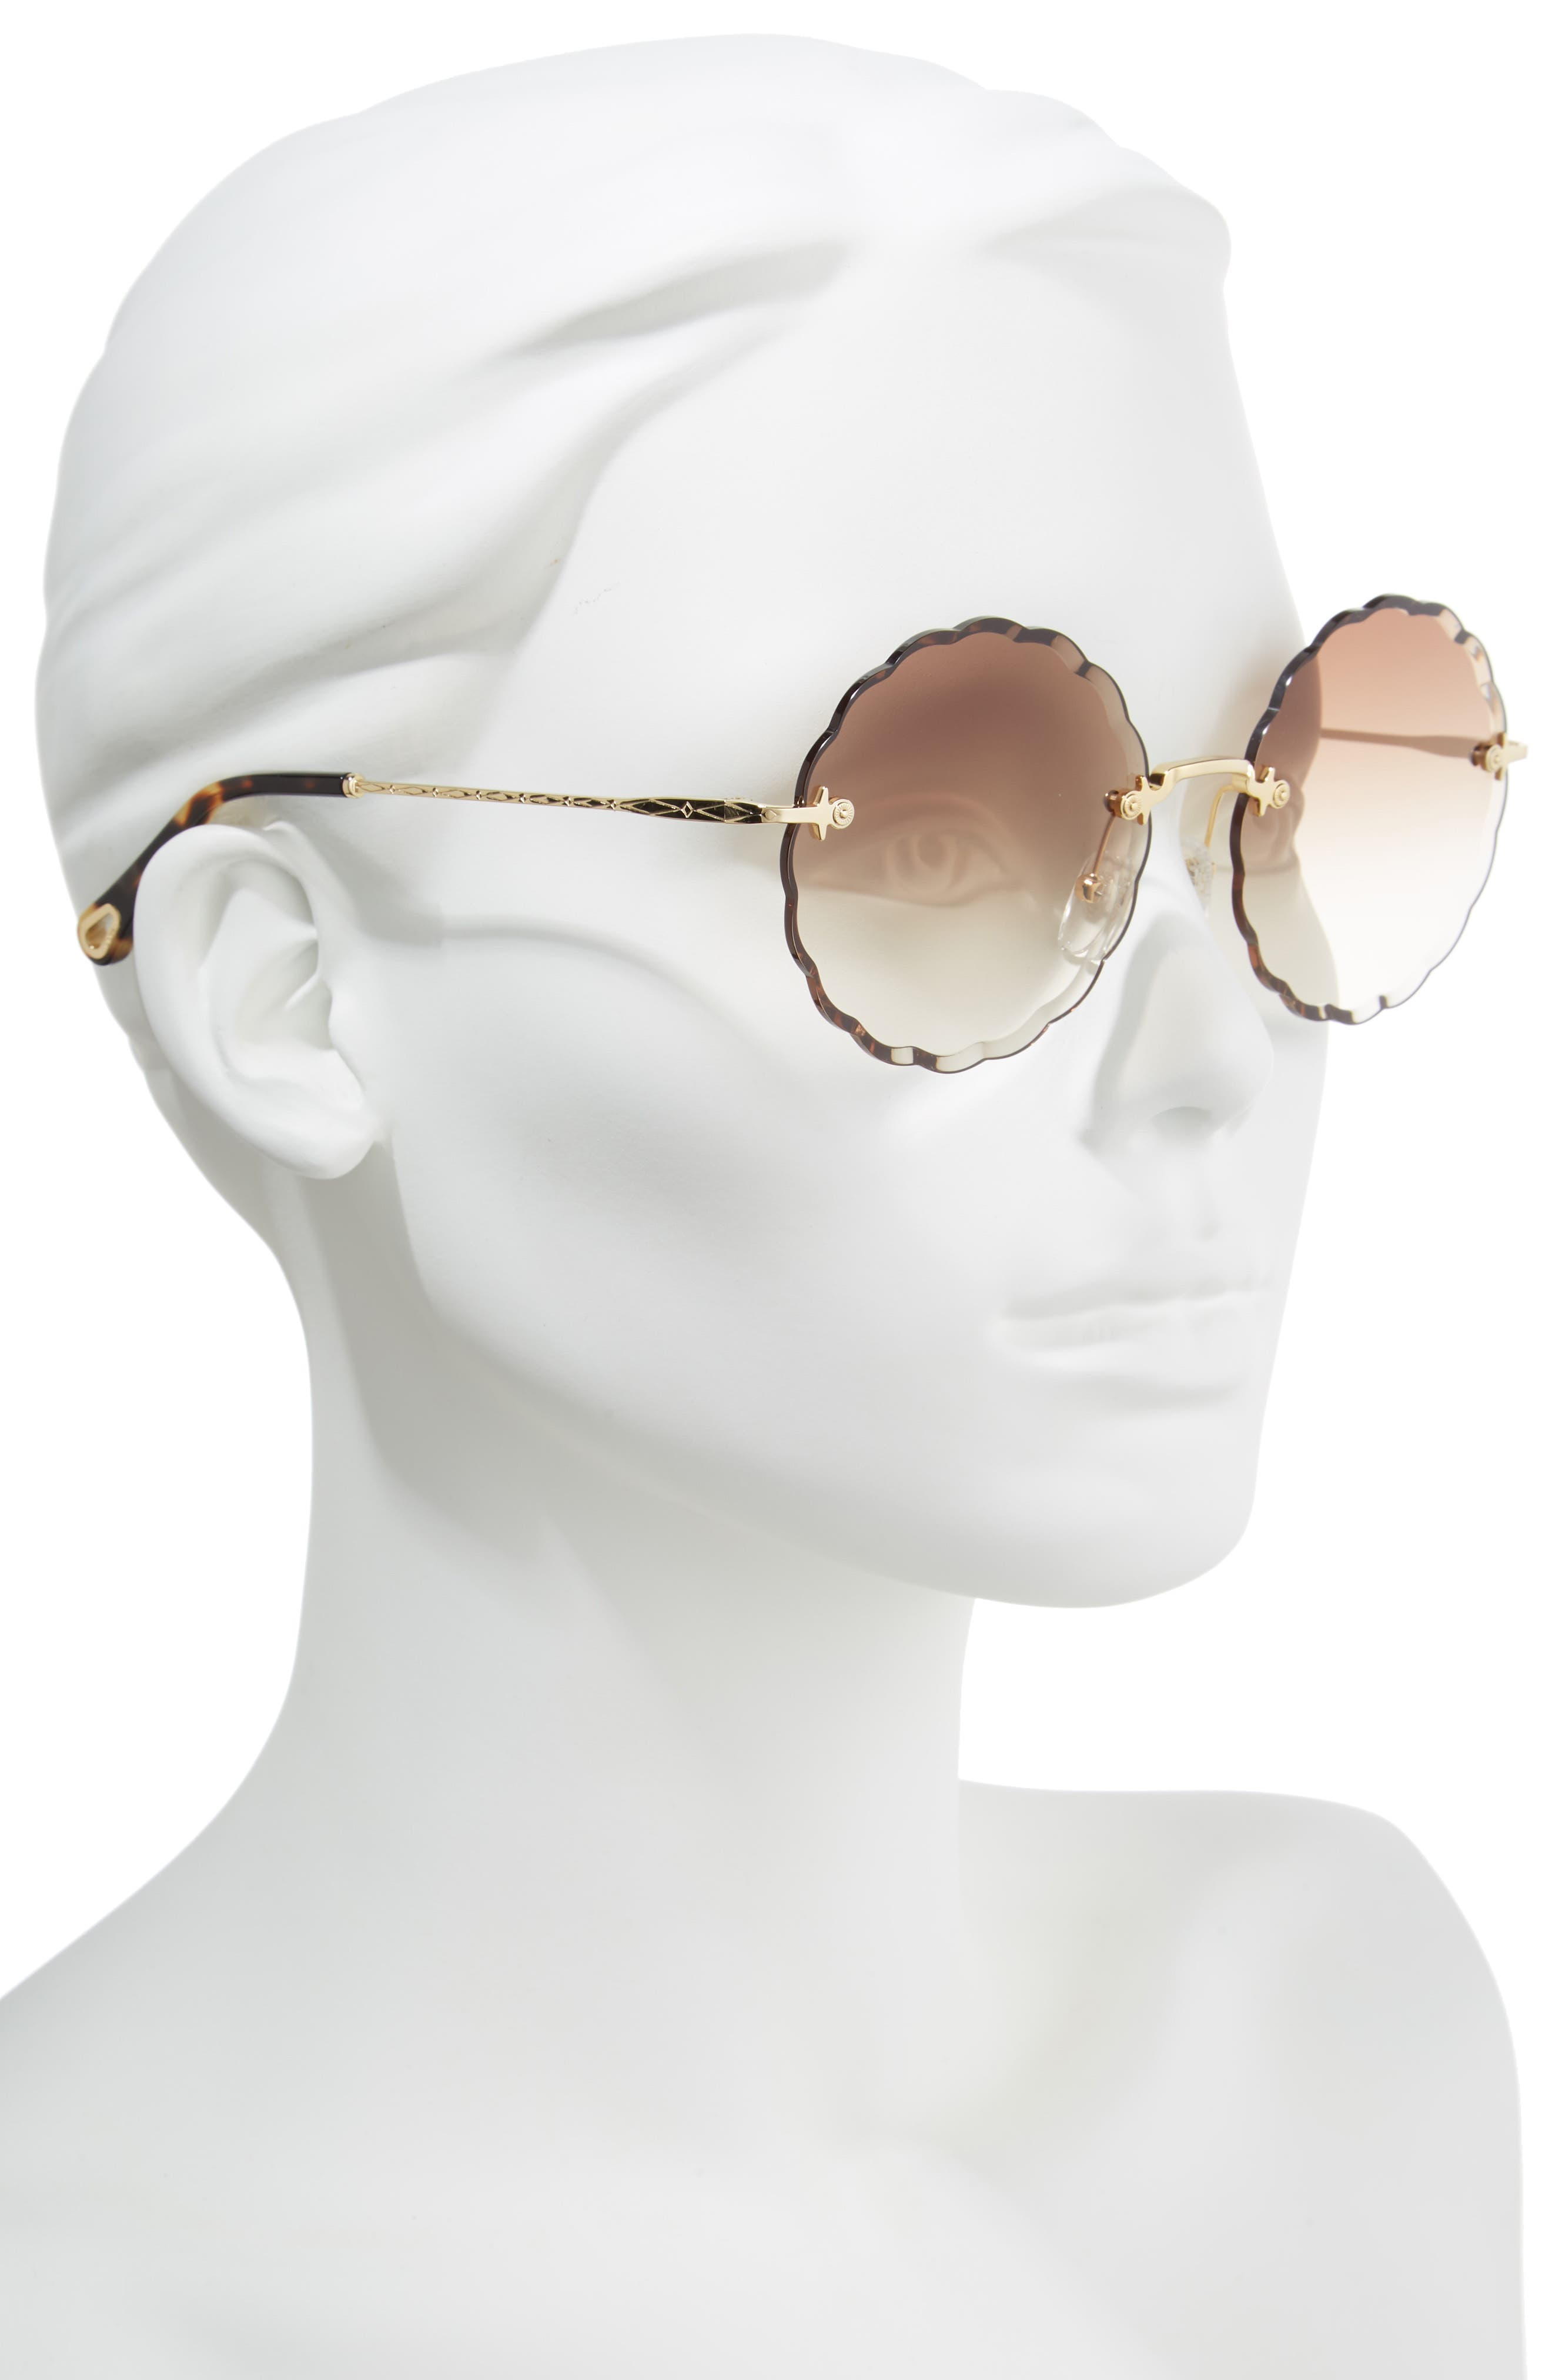 CHLOÉ, Rosie 60mm Scalloped Rimless Sunglasses, Alternate thumbnail 2, color, GOLD/ GRADIENT BROWN